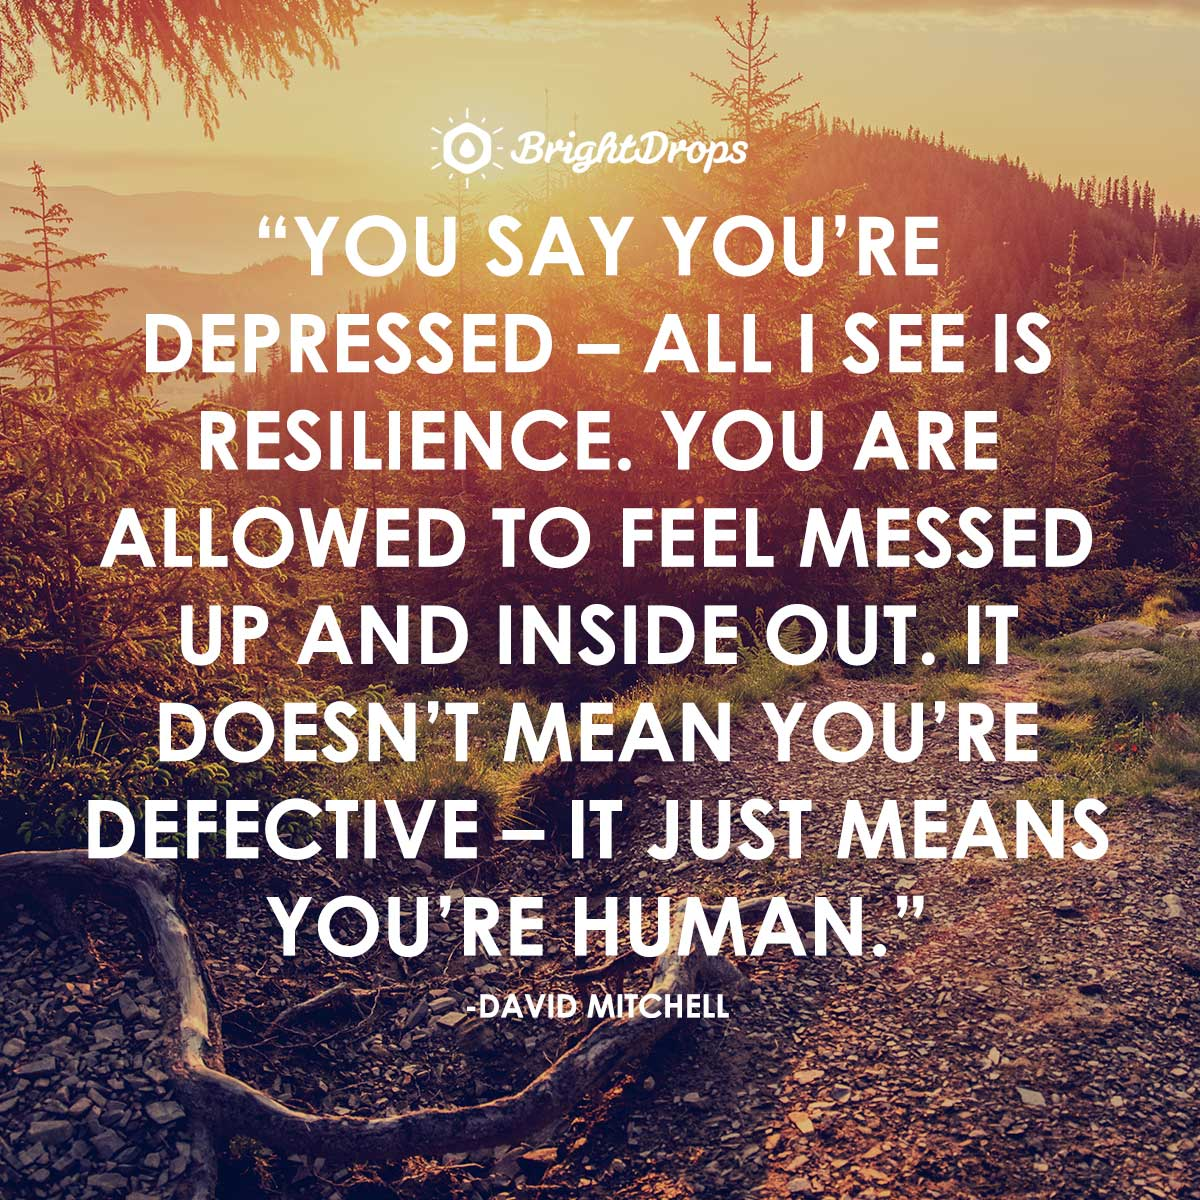 You say you're depressed – all I see is resilience. You are allowed to feel messed up and inside out. It doesn't mean you're defective – it just means you're human. -David Mitchell, Cloud Atlas